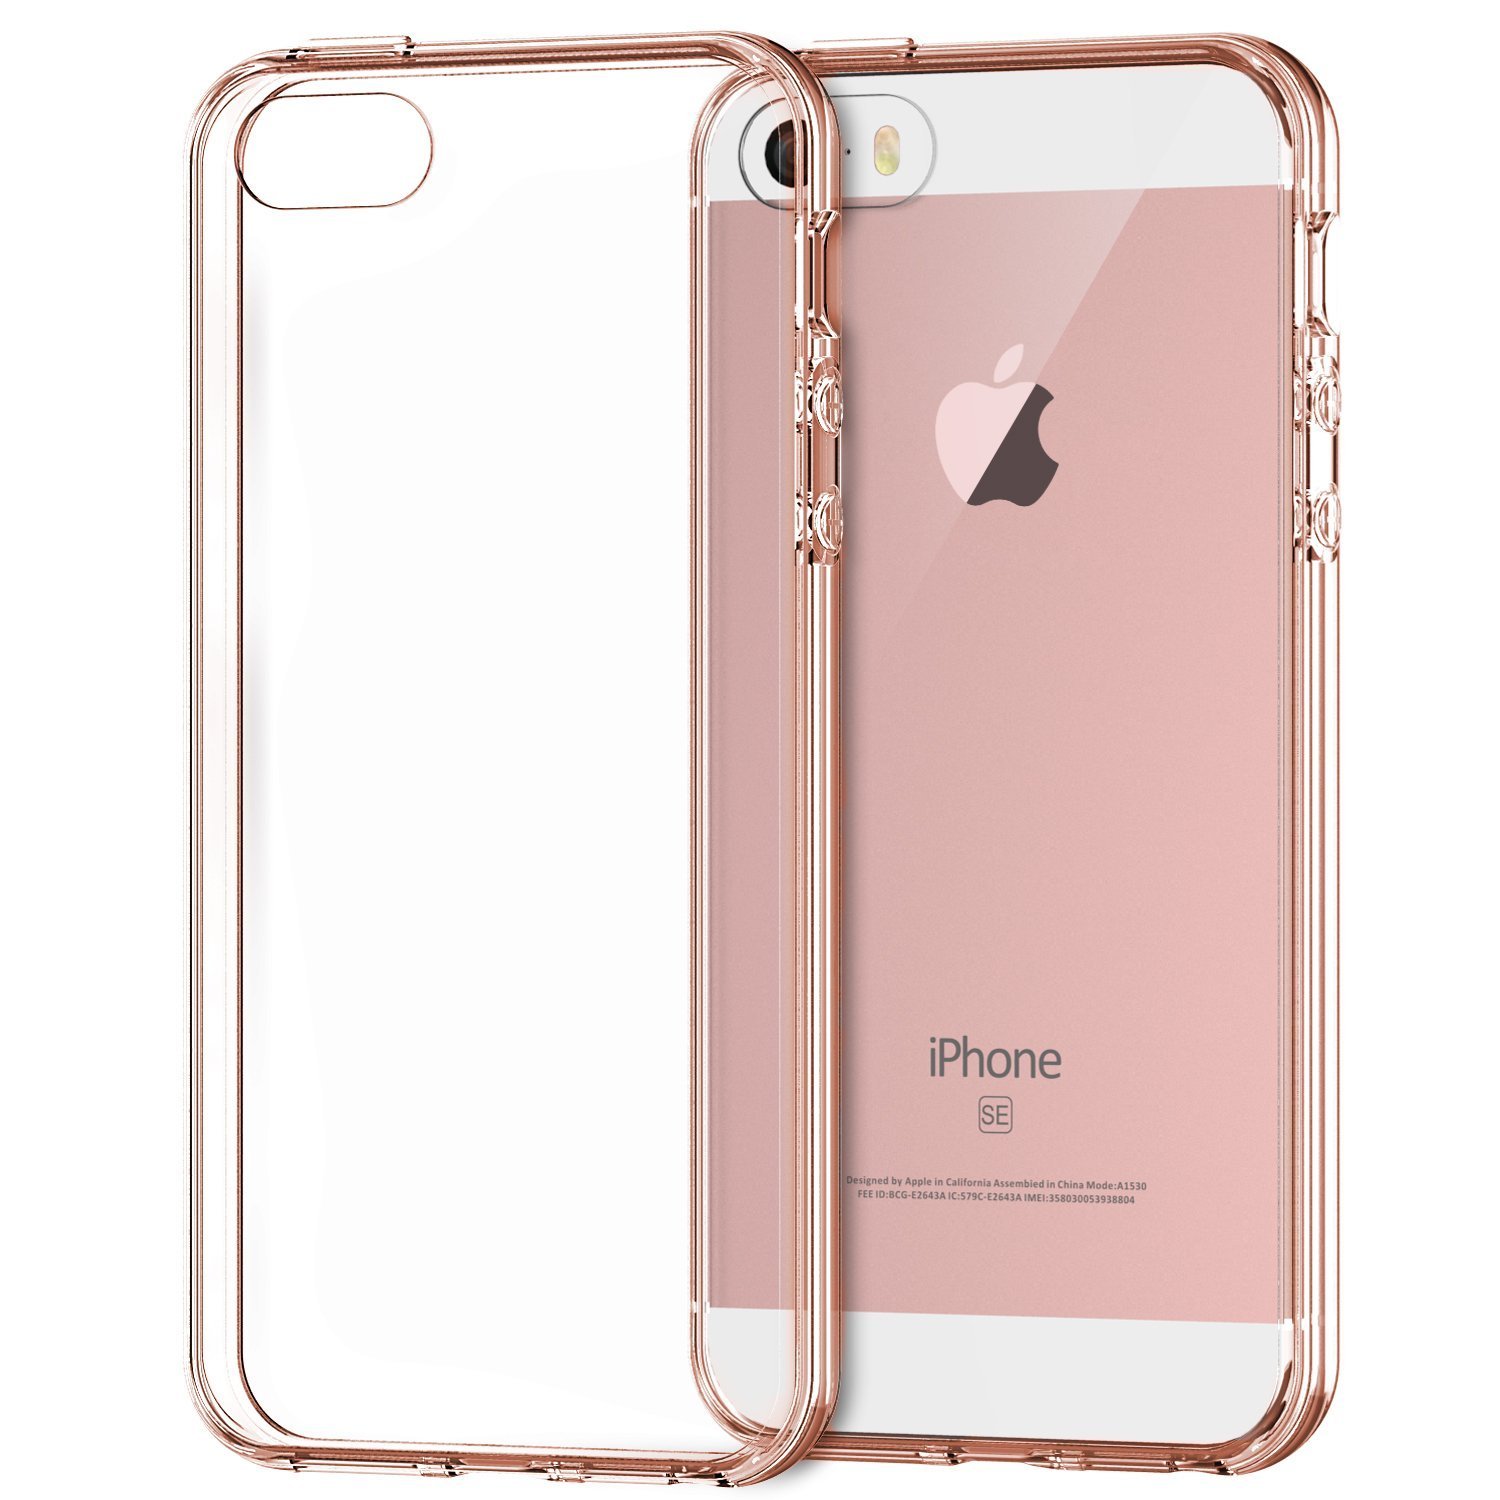 JETech Case for Apple iPhone SE, iPhone 5s, and iPhone 5, Shock-Absorption Bumper Cover, Anti-Scratch Clear Back (Rose Gold)